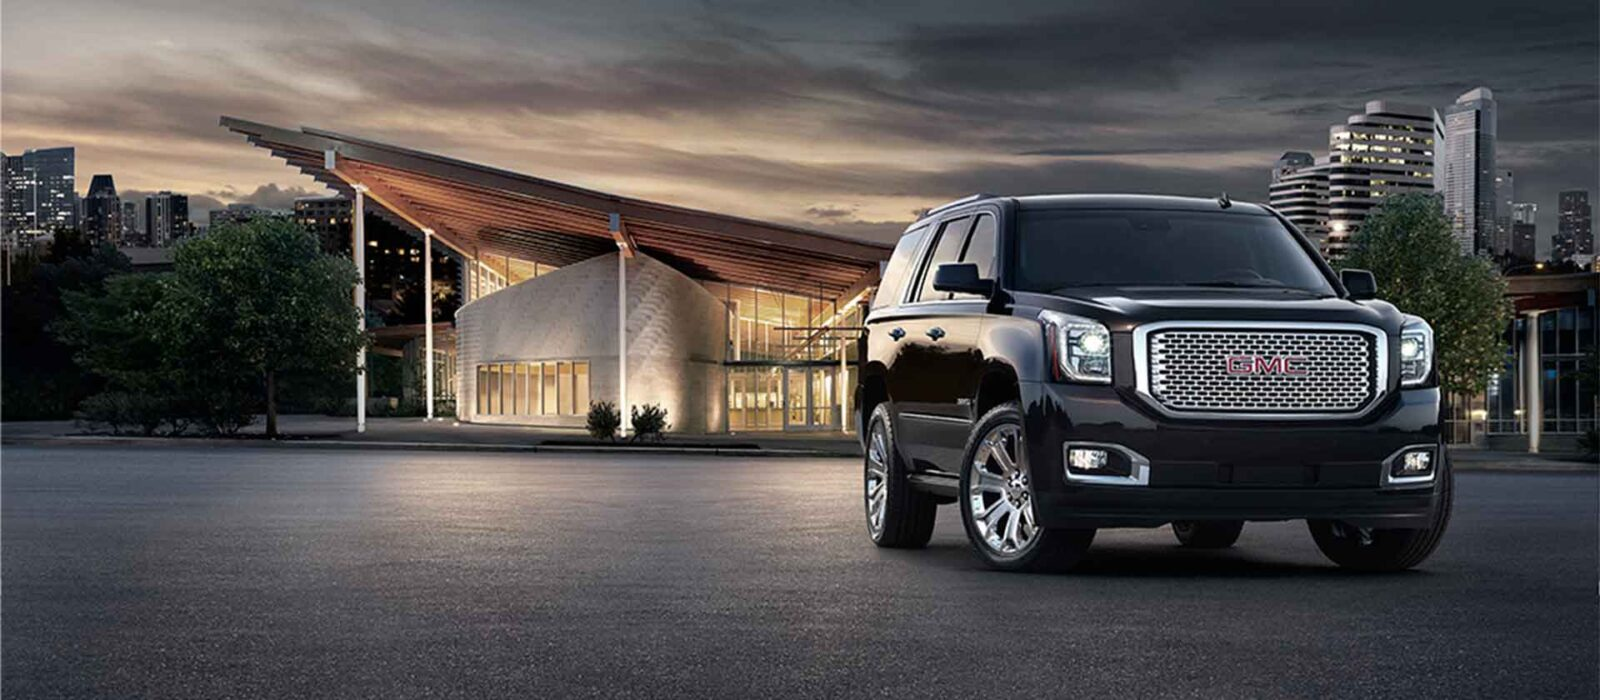 black 2016 GMC Yukon Denali wallpaper HD